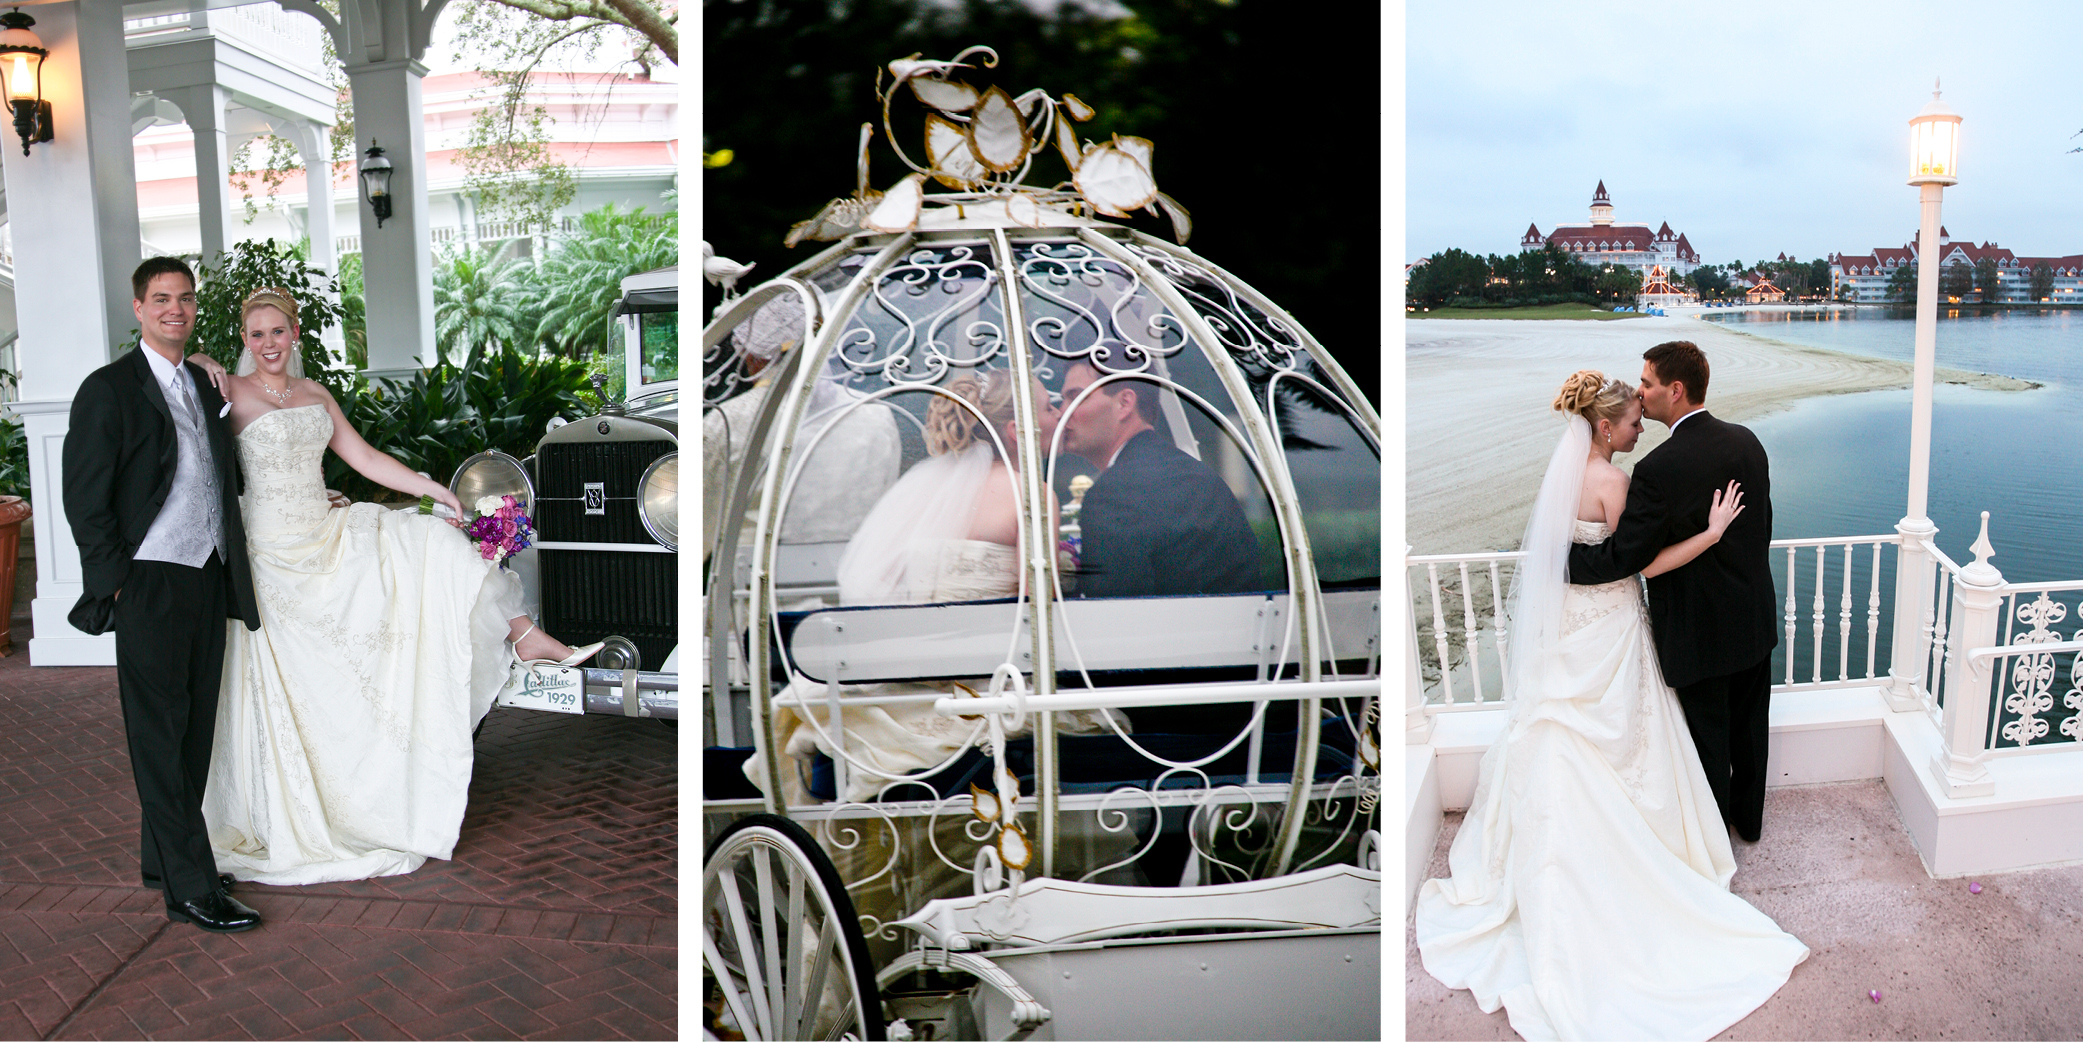 Some shots from our Fairy Tale Wedding: posing with a vintage car, riding in the pumpkin coach and a view of the Grand Floridian.